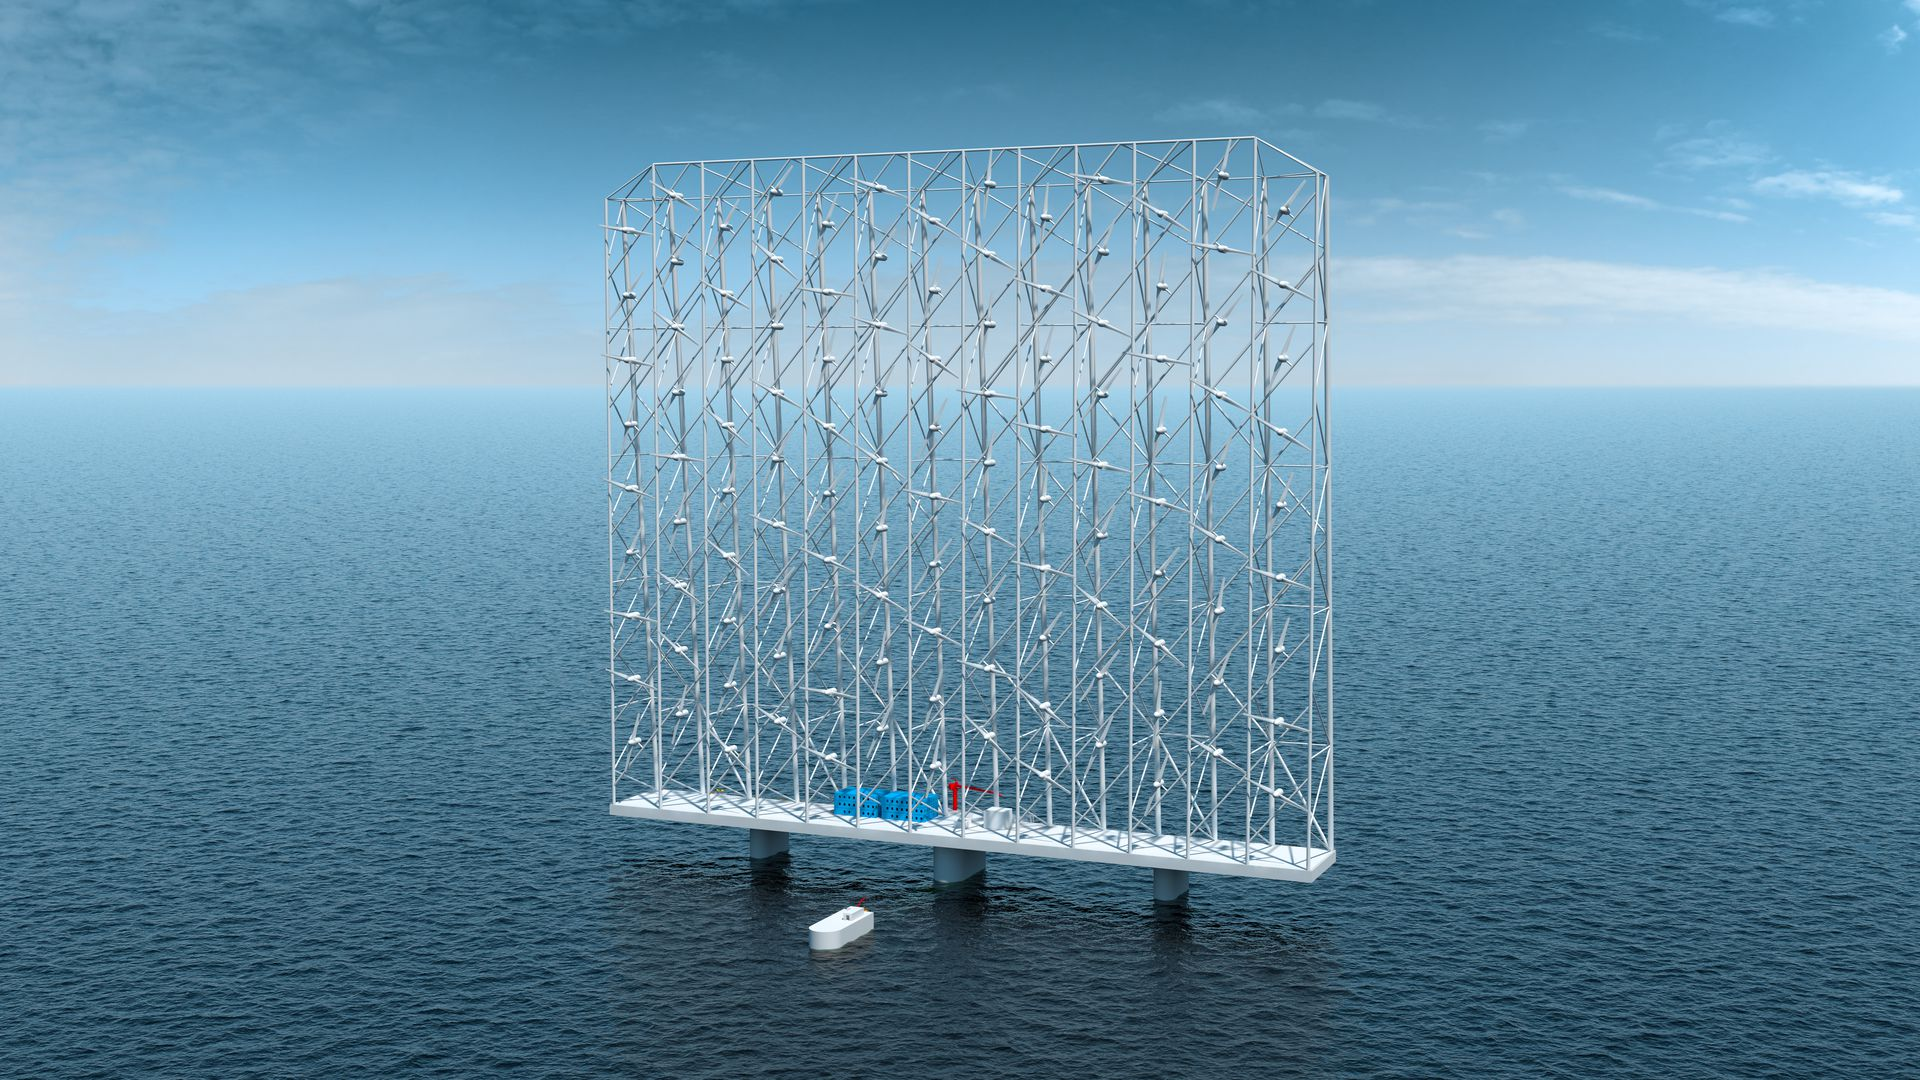 Image of Wind Catching Systems' floating network of wind turbines